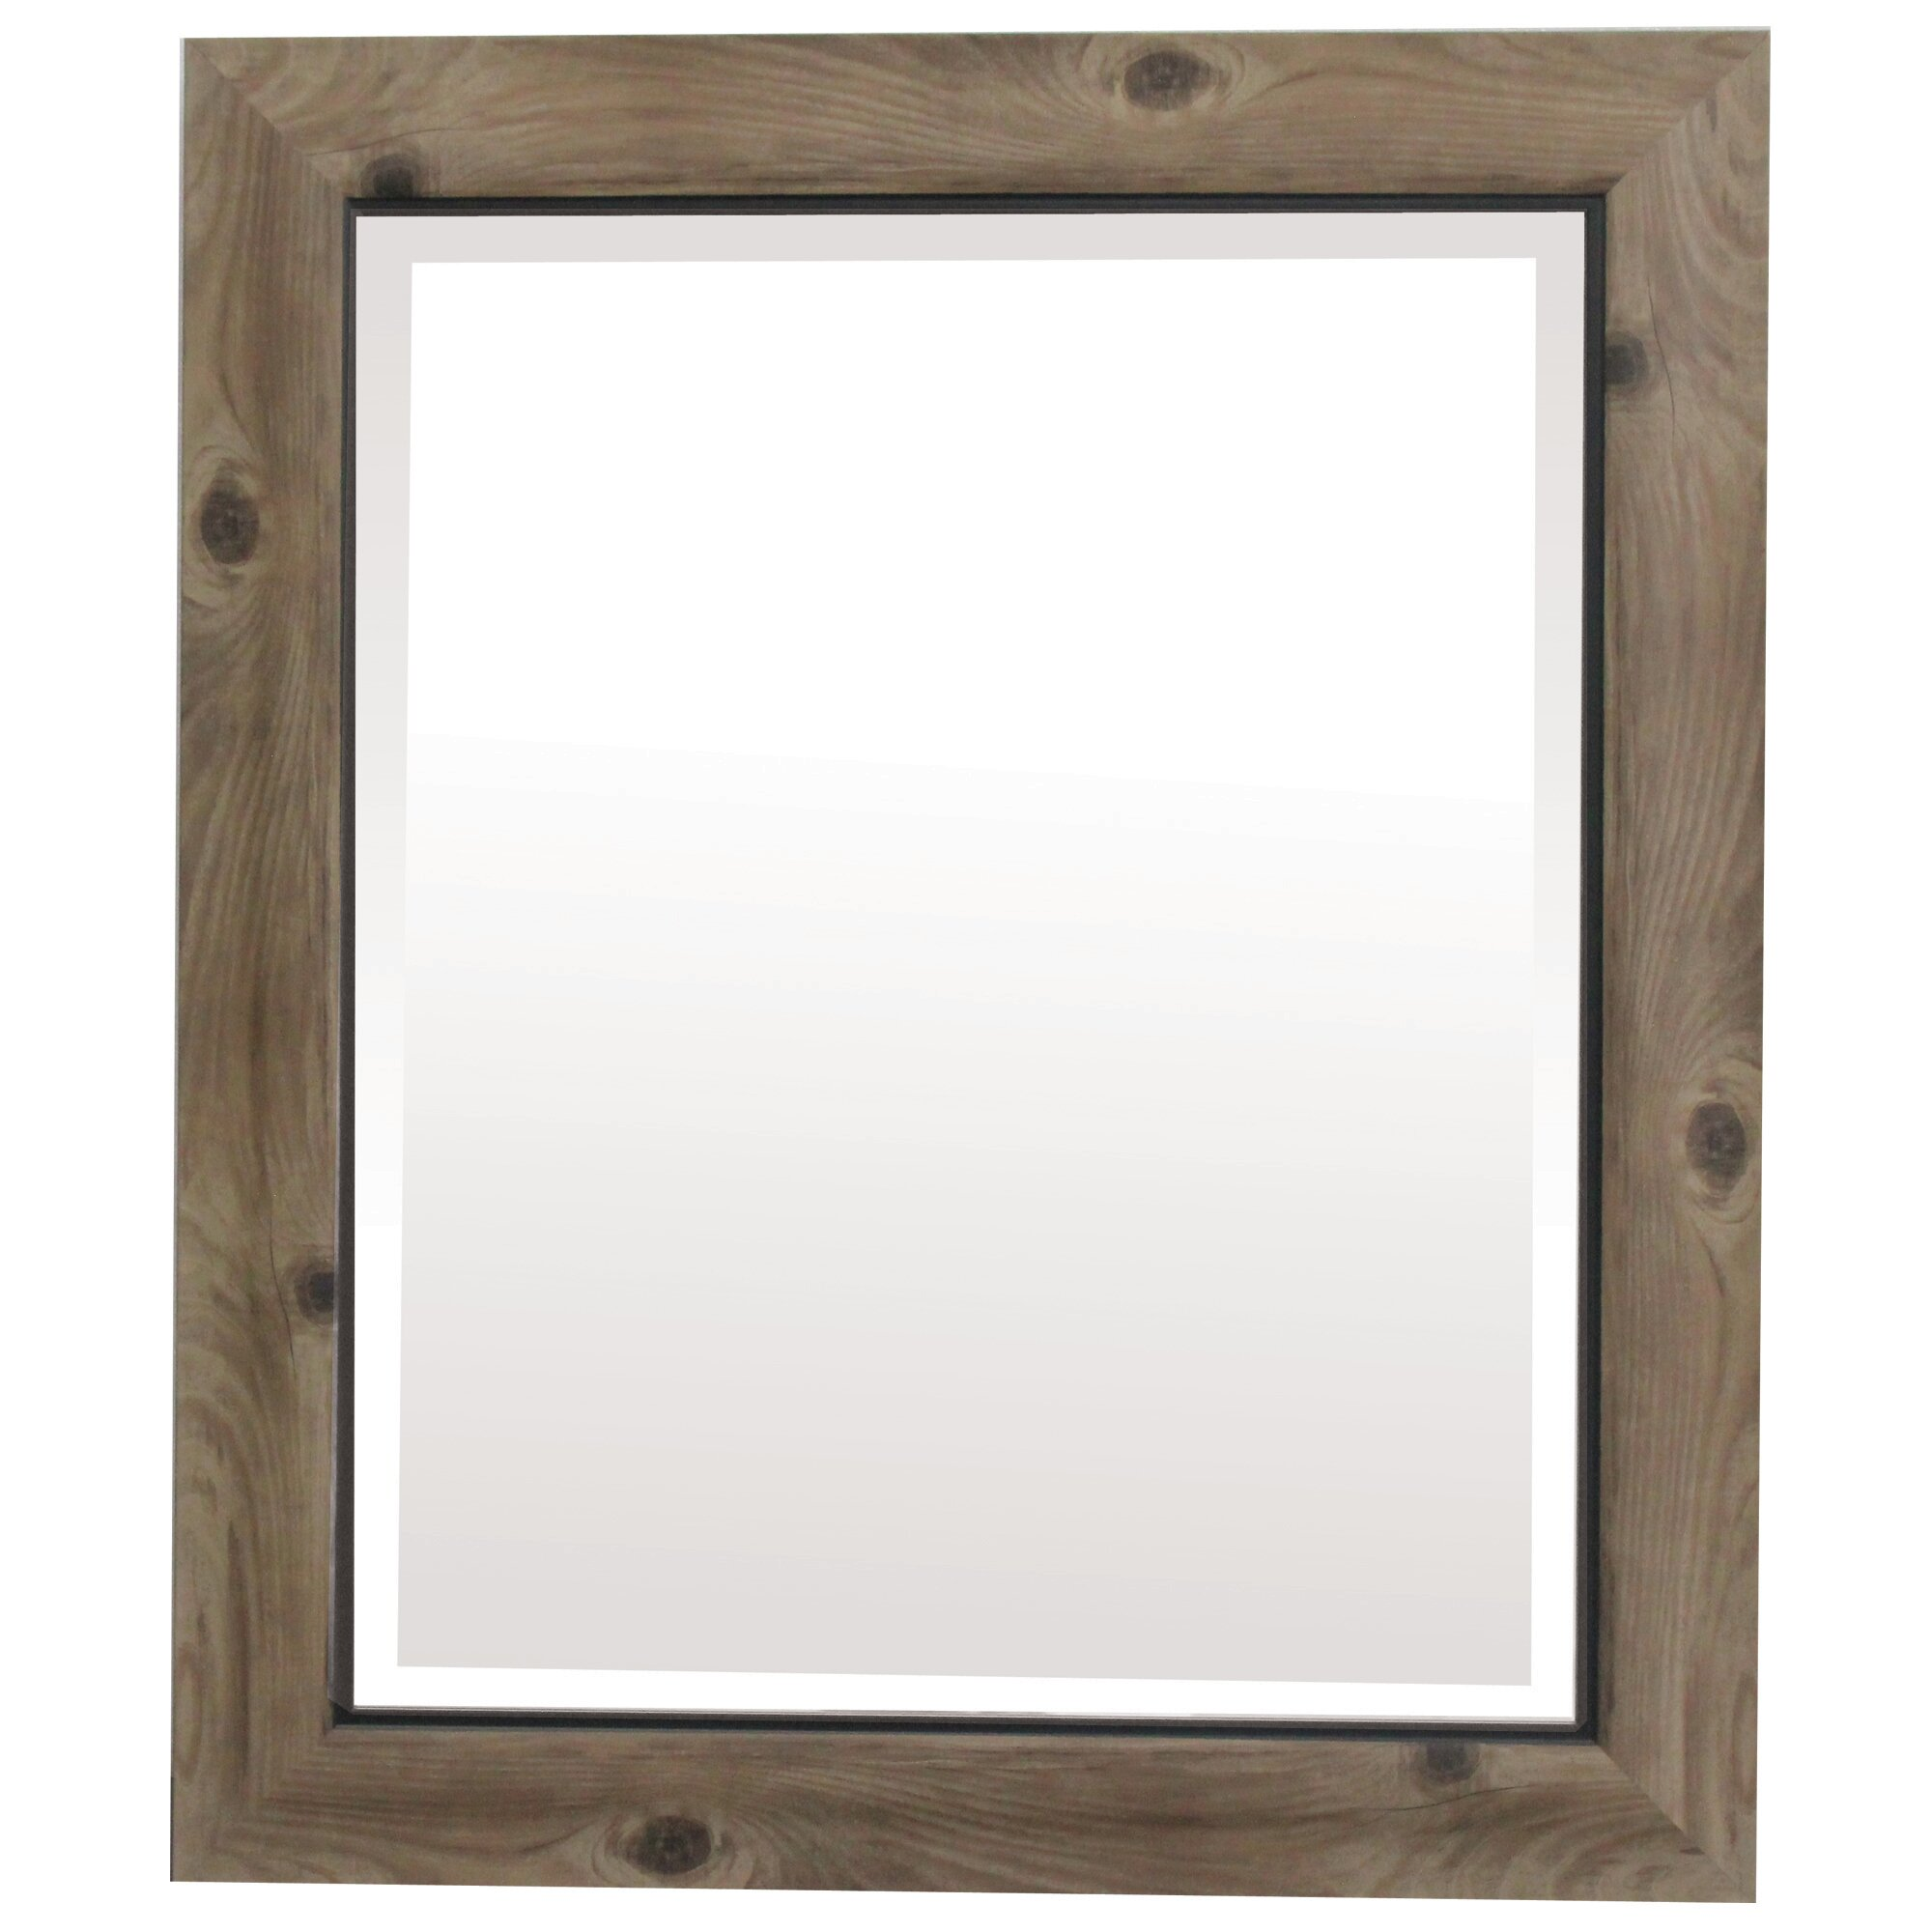 Yosemite Home Decor Framed Wall Mirror Reviews Wayfairca